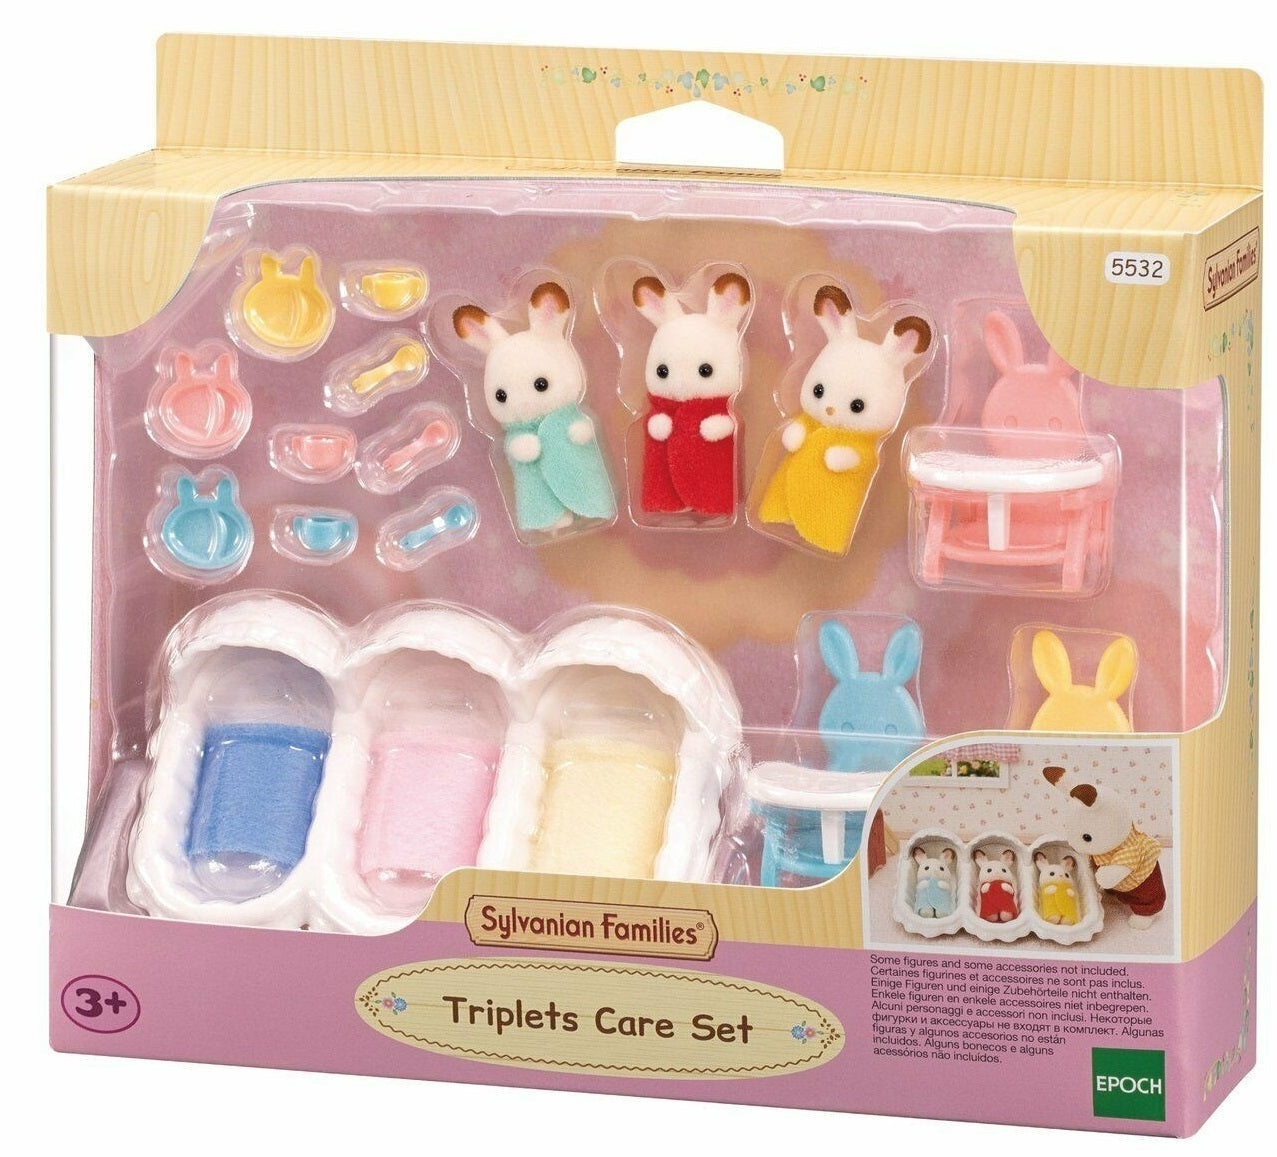 Sylvanian Families 5532 Triplets Care Set in box